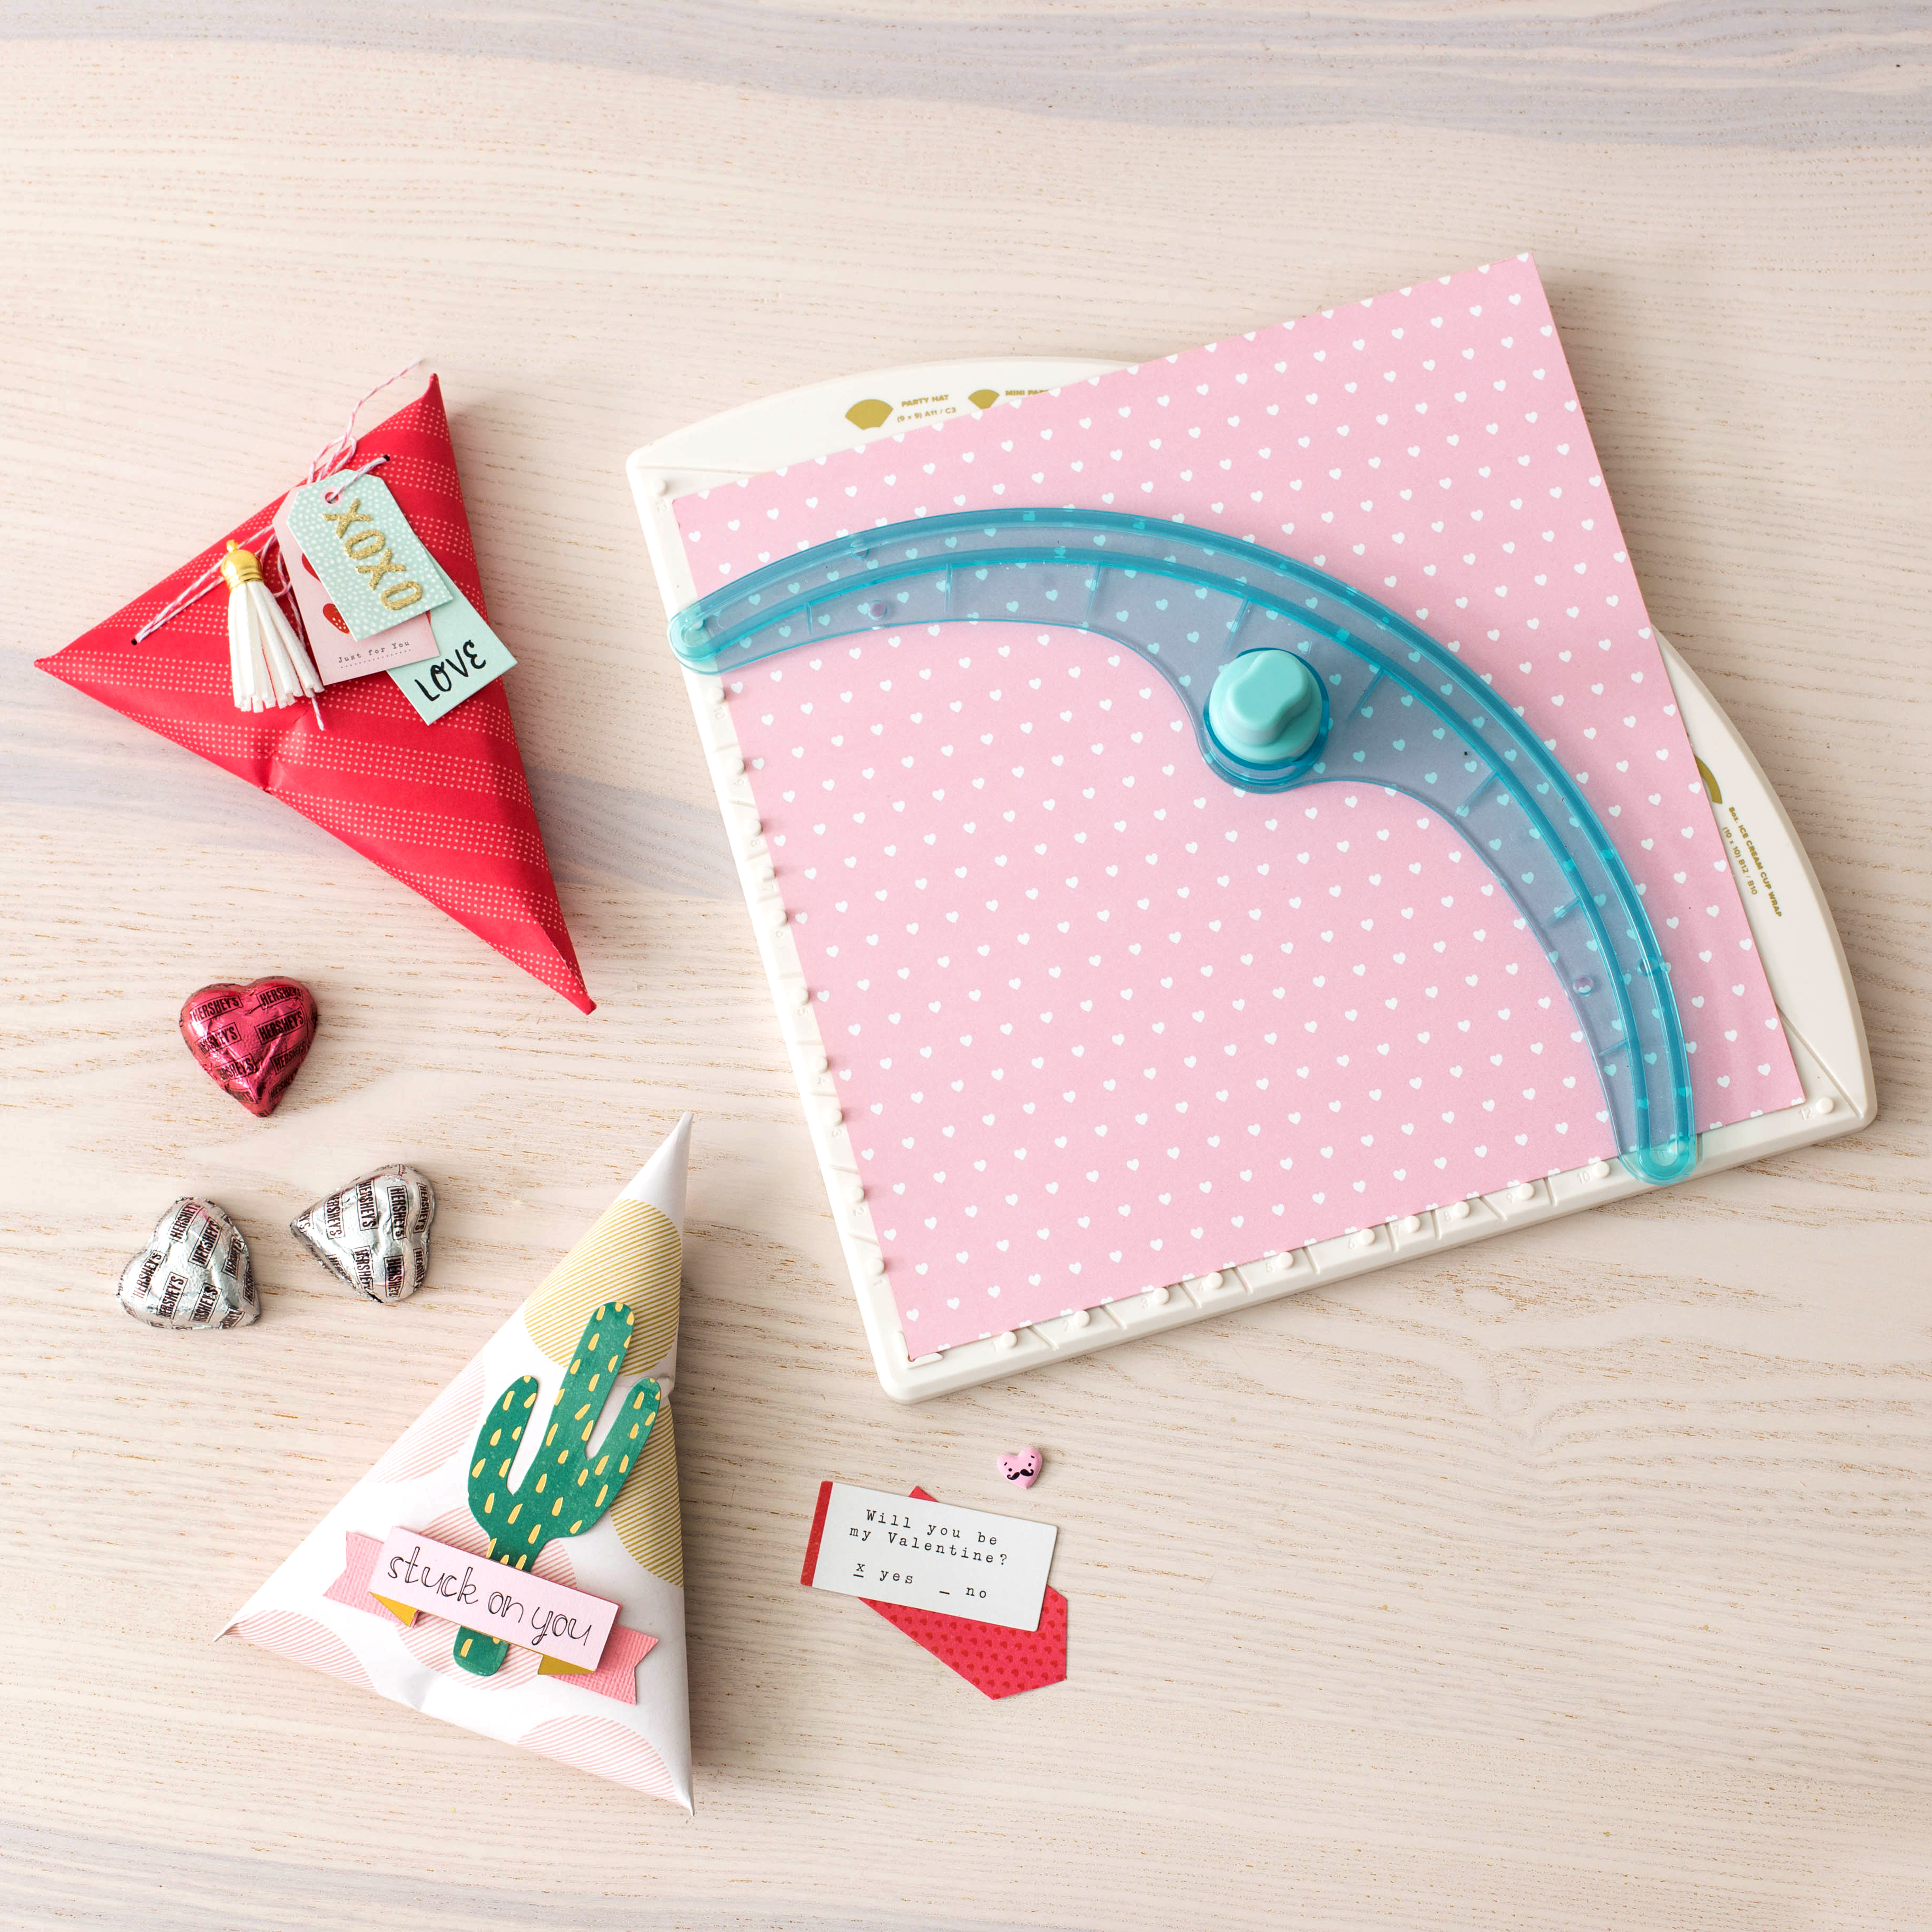 Diy Party Board Project Inspiration We R Memory Keepers Blog